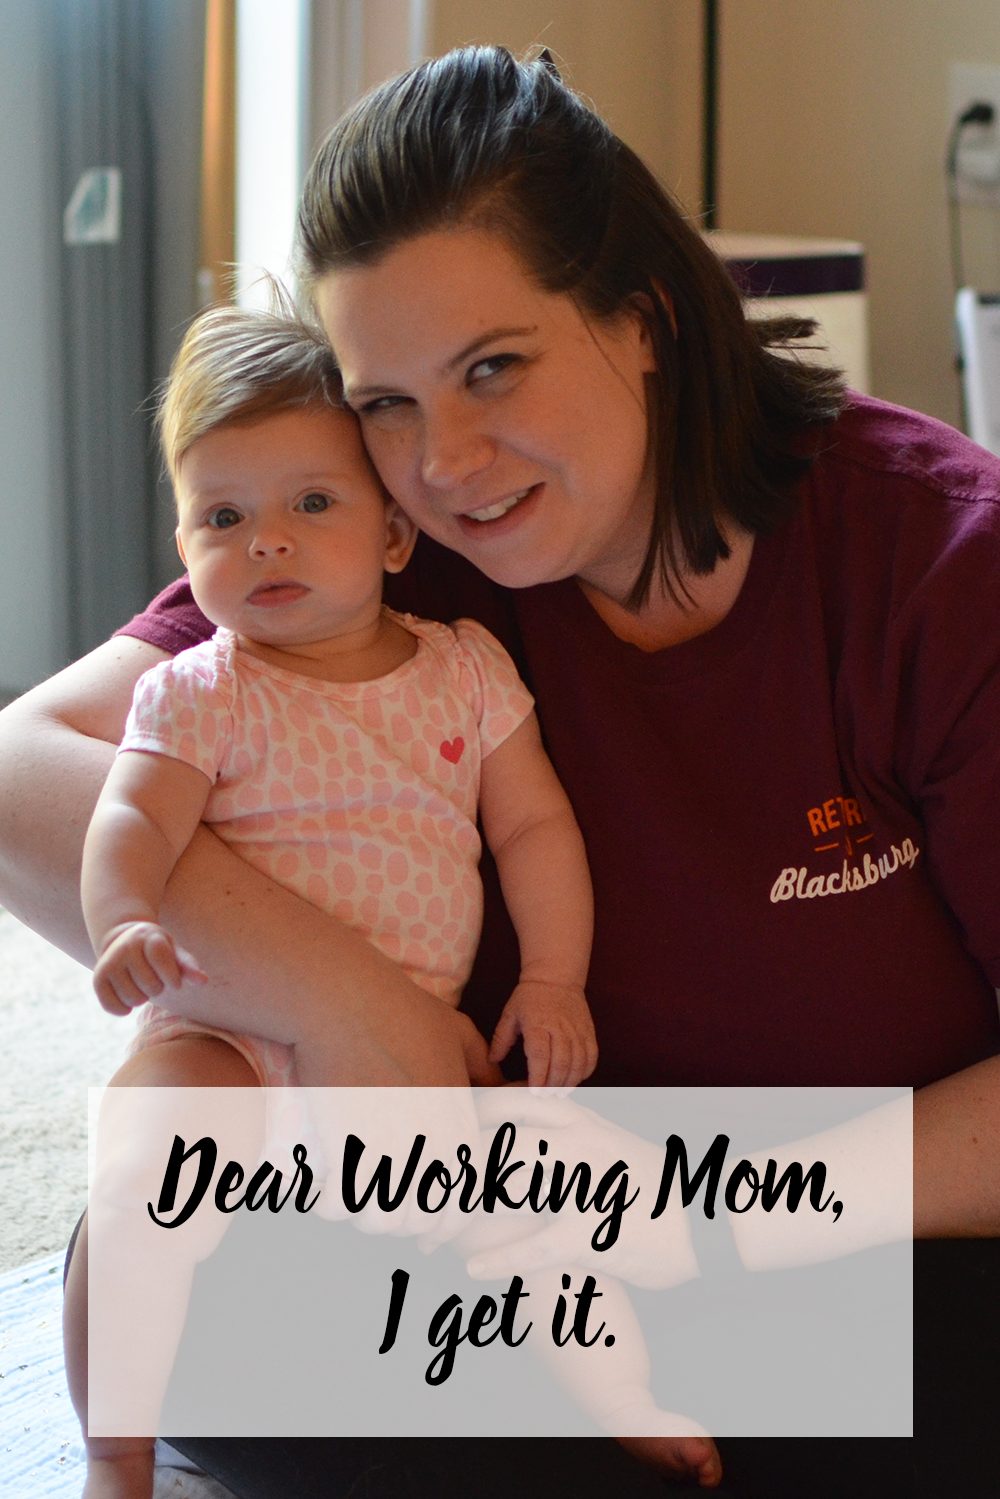 Working motherhood is not for the faint of heart and comes with it's own challenges. To the working moms out there - I get it.